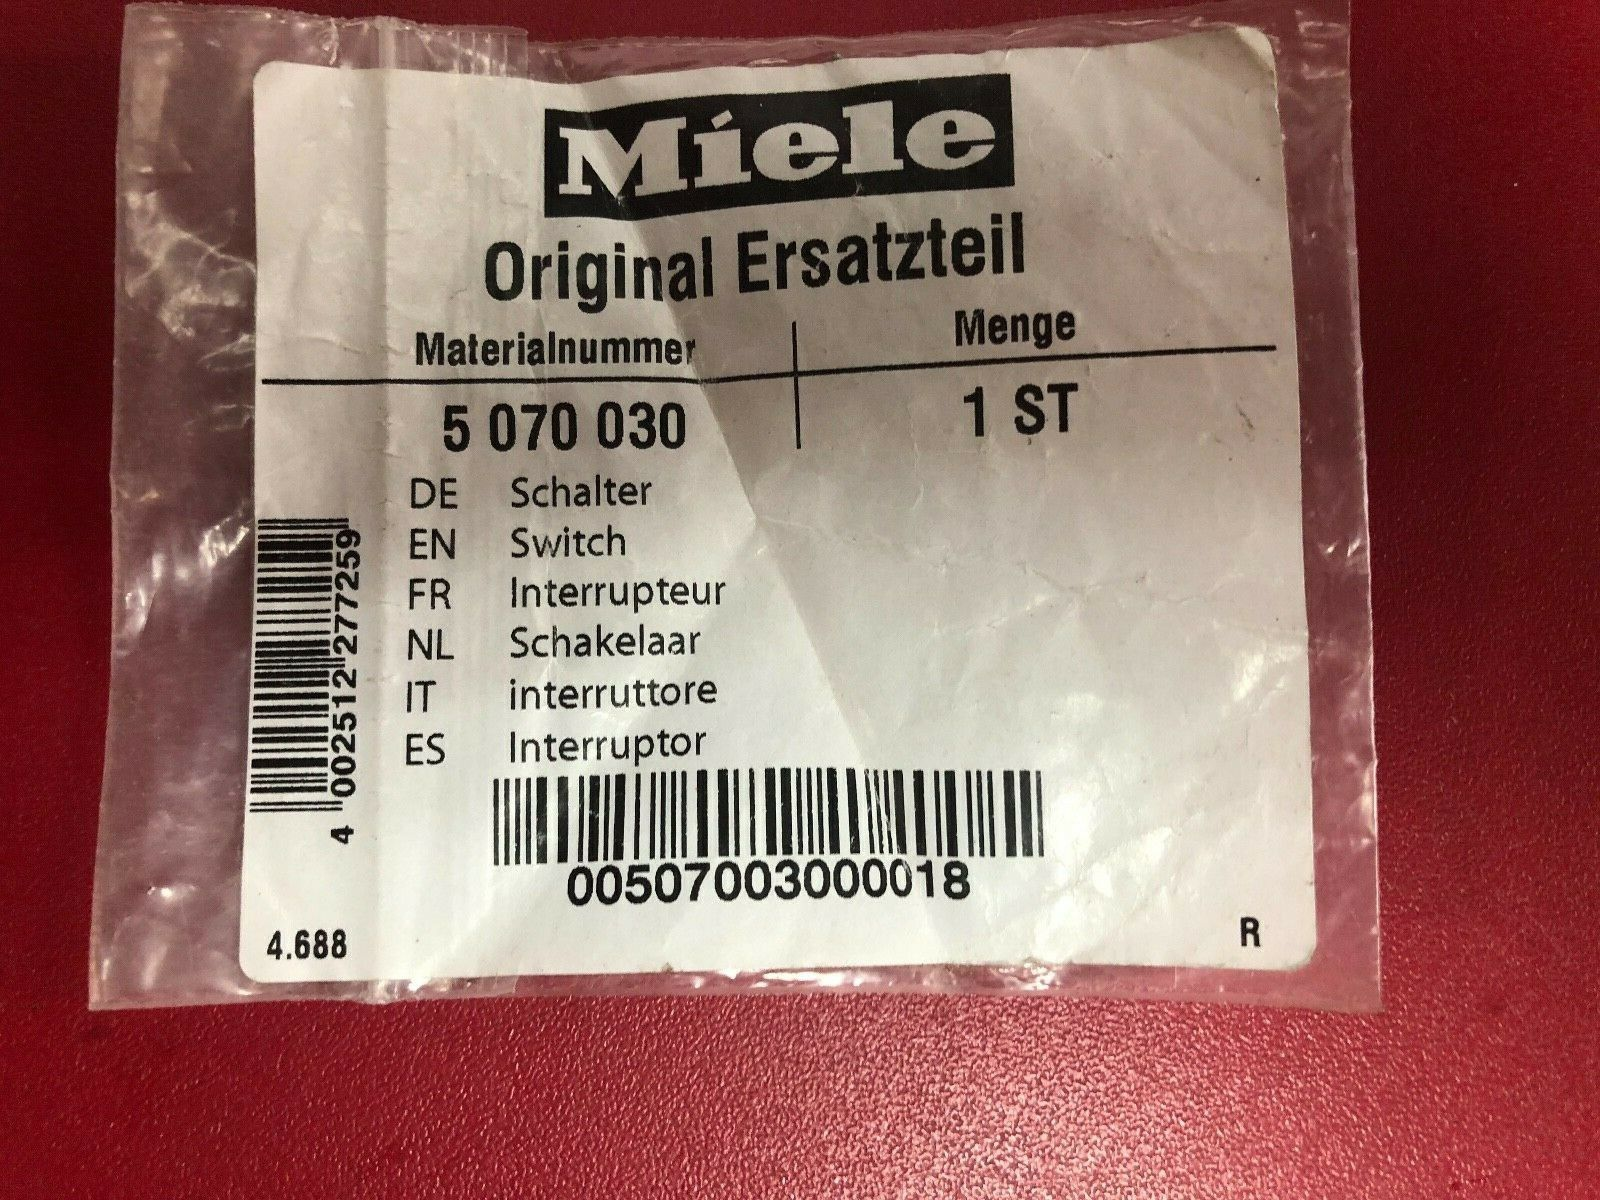 Primary image for  Miele Coffee Machine Microswitch Part 5070030